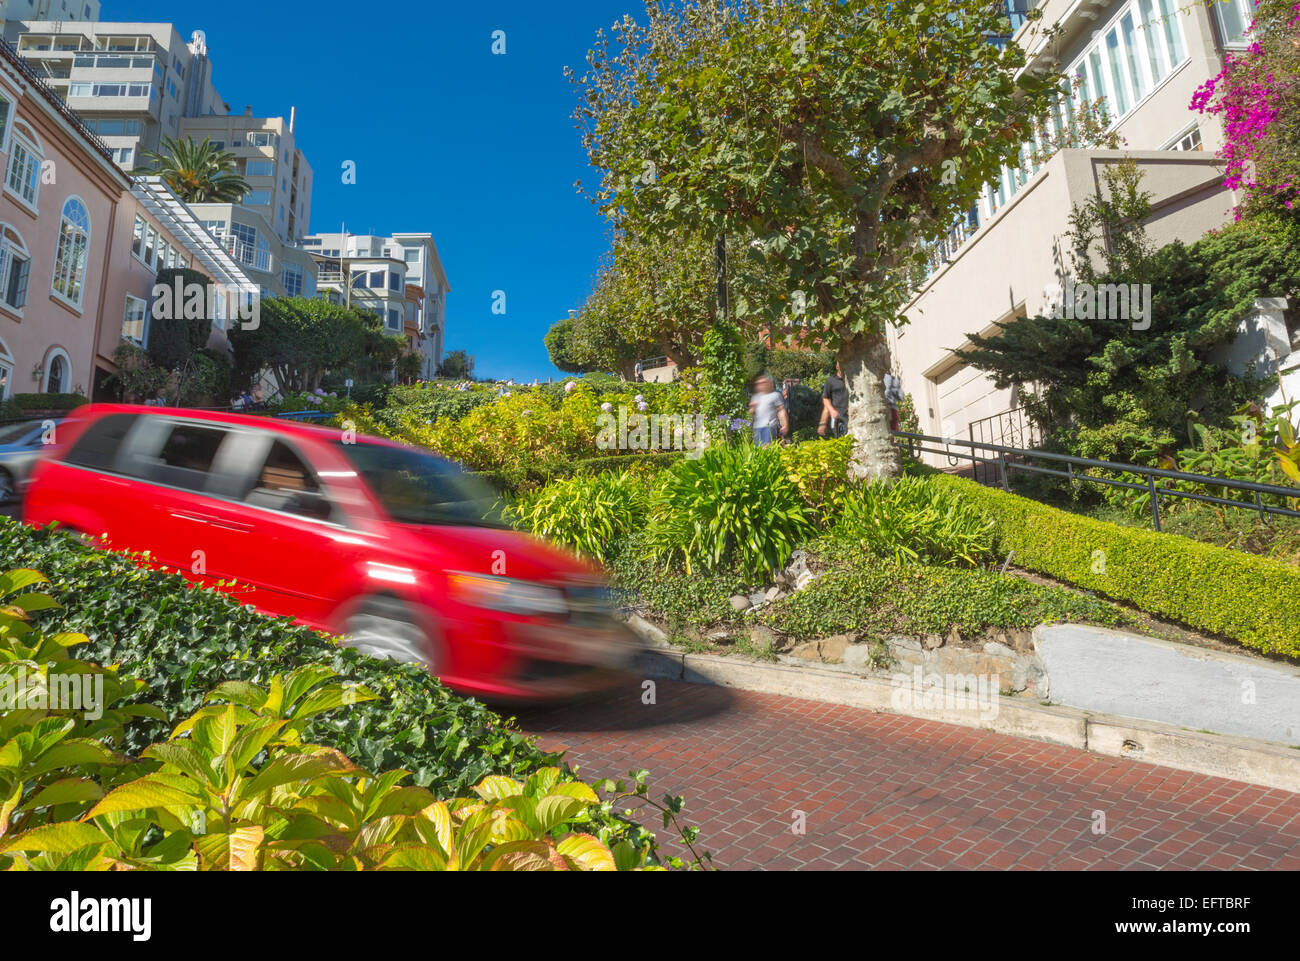 BLURRED AUTO TRAFFIC LOMBARD STREET RUSSIAN HILL DISTRICT SAN FRANCISCO CALIFORNIA USA - Stock Image